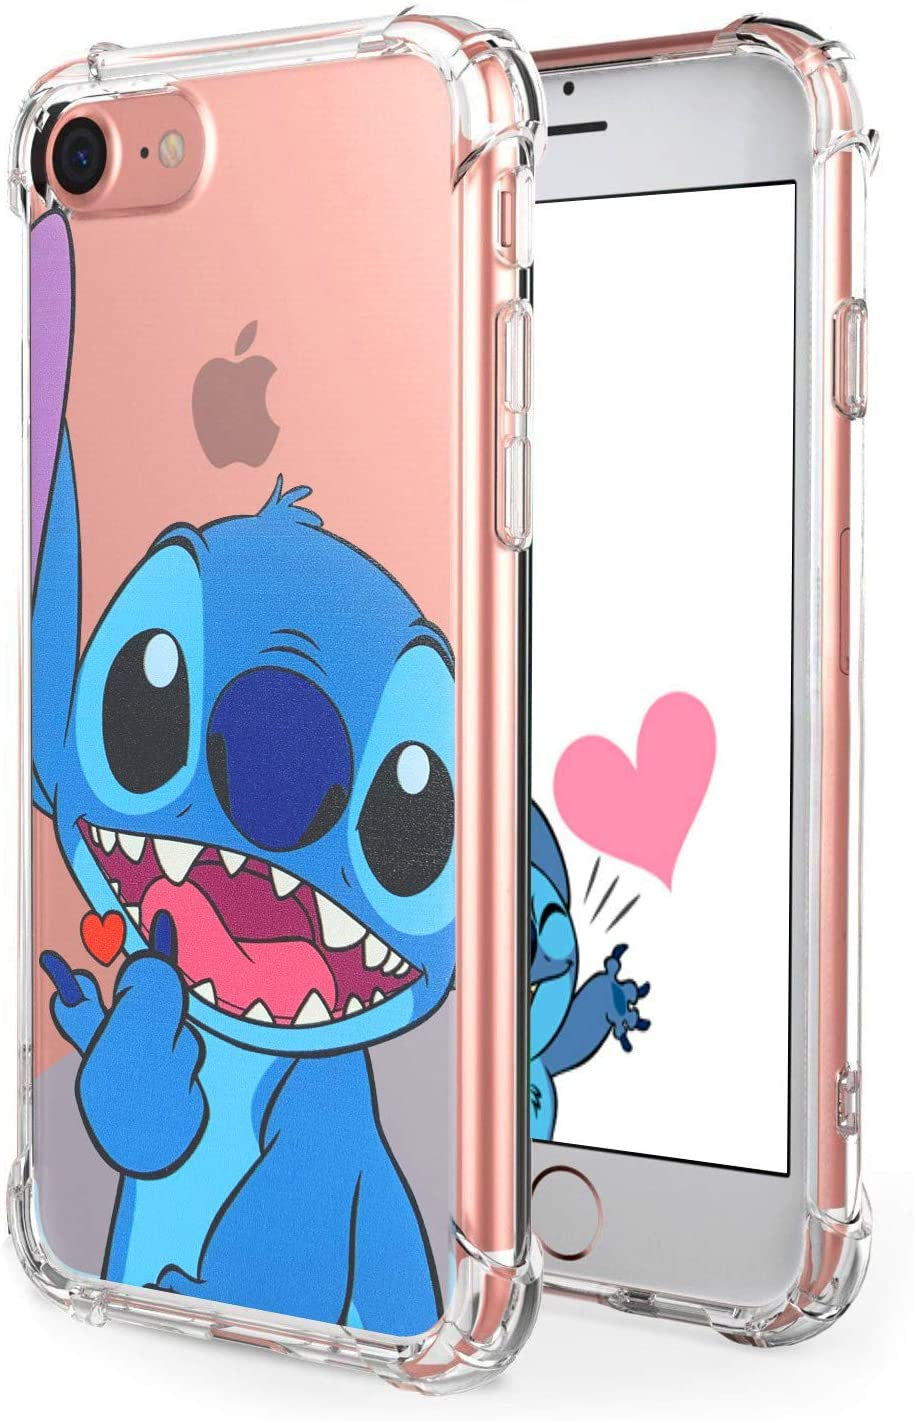 """Logee Sweet Stitch TPU Cute Cartoon Clear Case for iPhone 6/6S 4.7"""",Fun Kawaii Animal Soft Protective Cover,Ultra-Thin Shockproof Funny Creative Character Chic Cases for Kids Teens Girls Boys(iPhone6"""